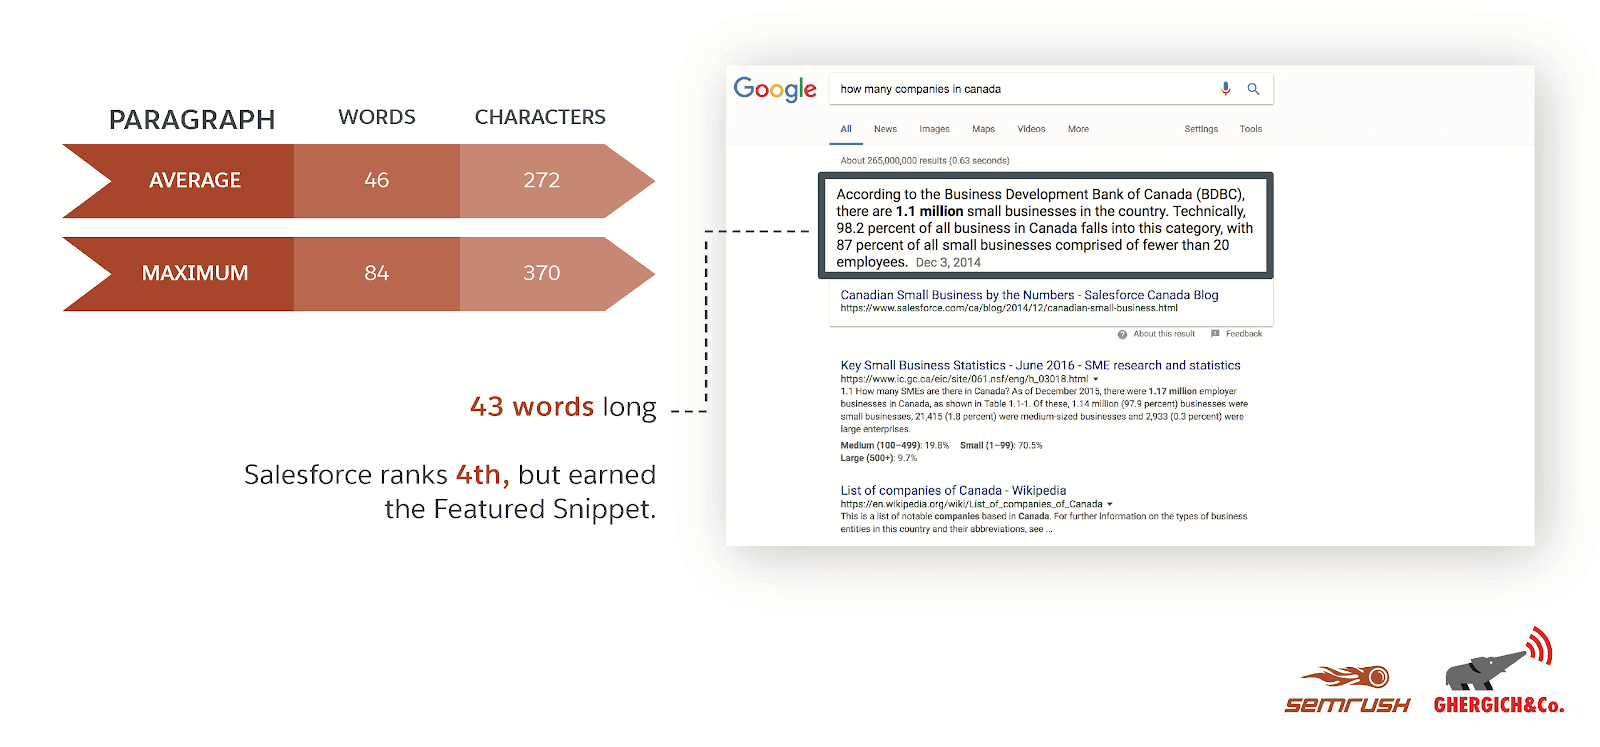 Most featured snippets are 40 to 60 words long